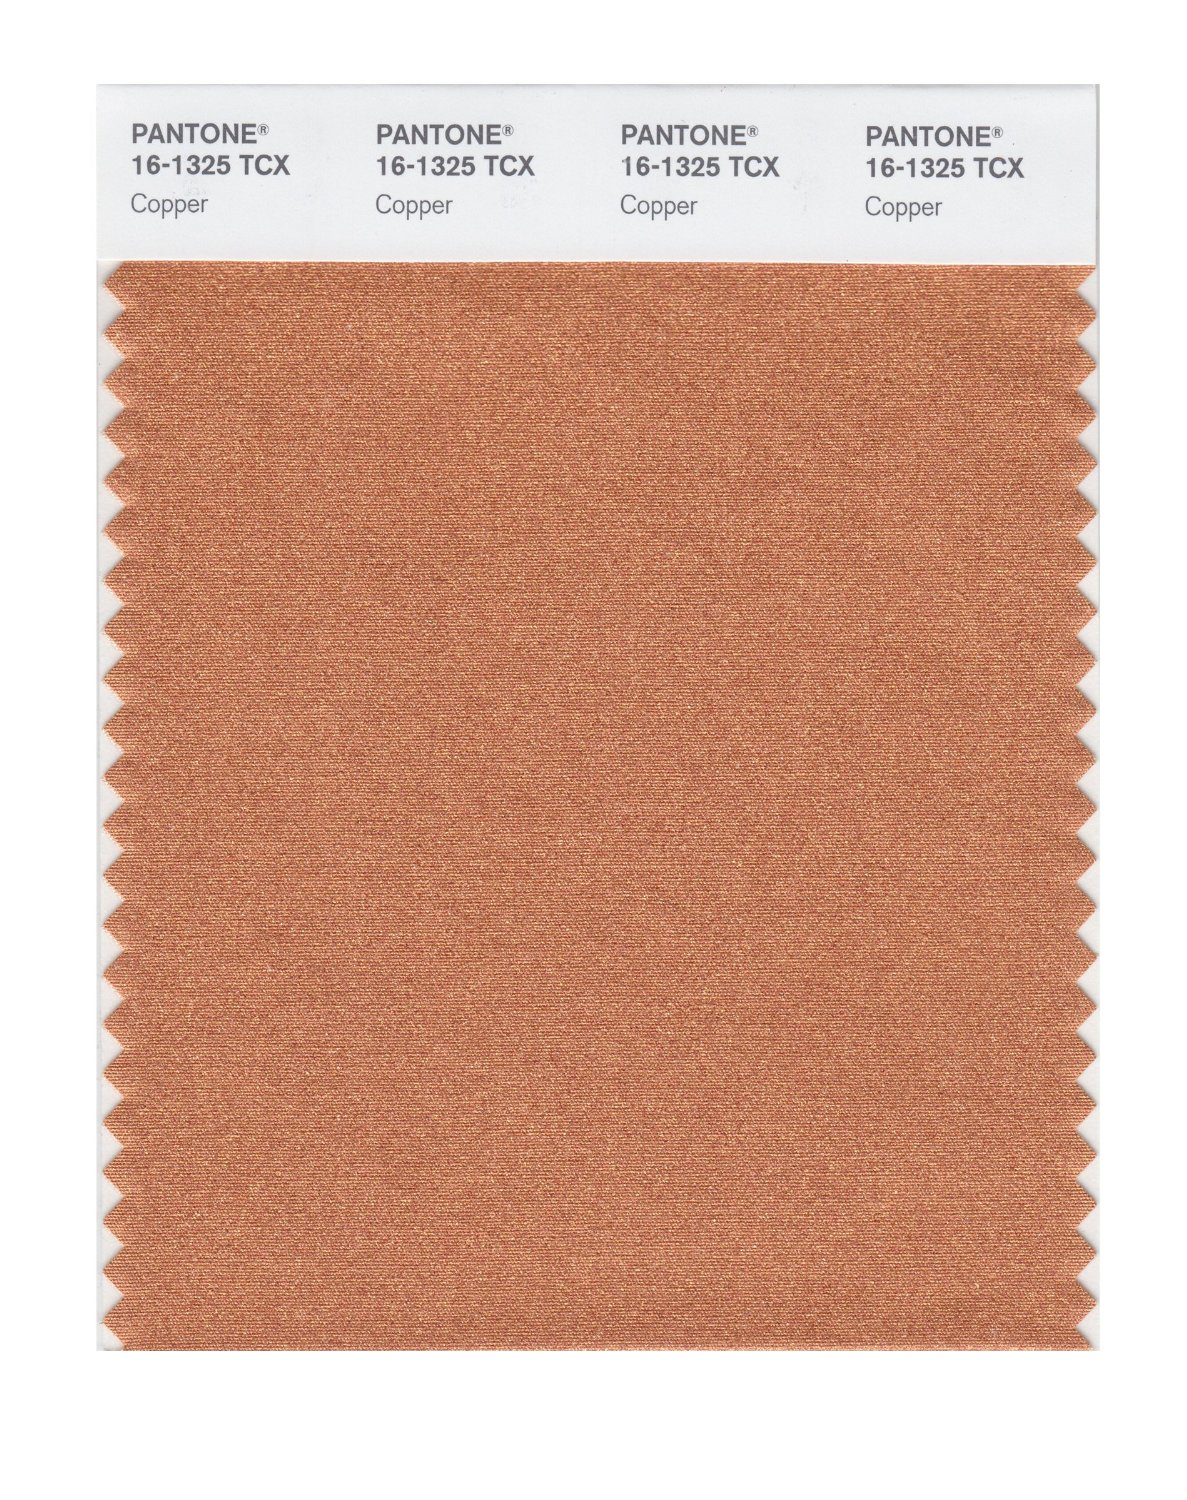 Pantone Smart Swatch 16-1325 Copper